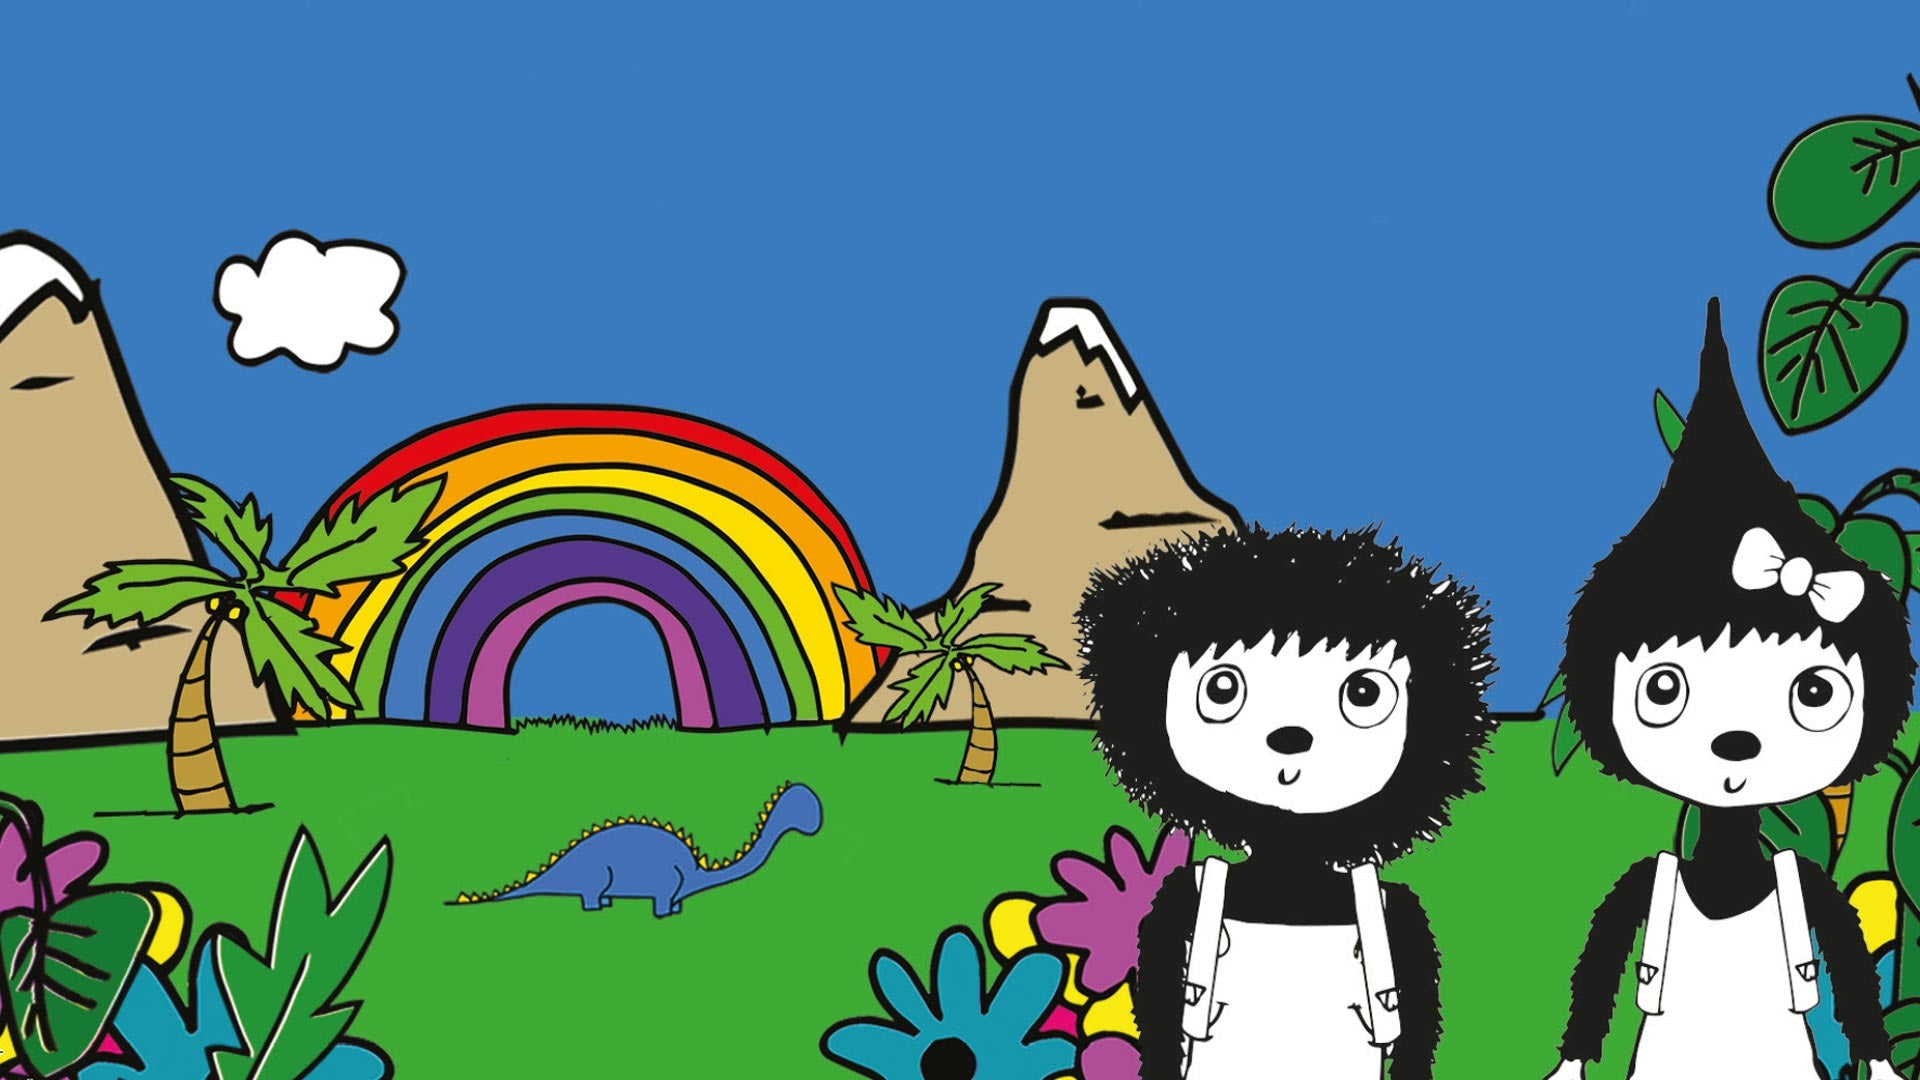 Zip and Zoe standing with grass, rainbow, plants and mountains in the background